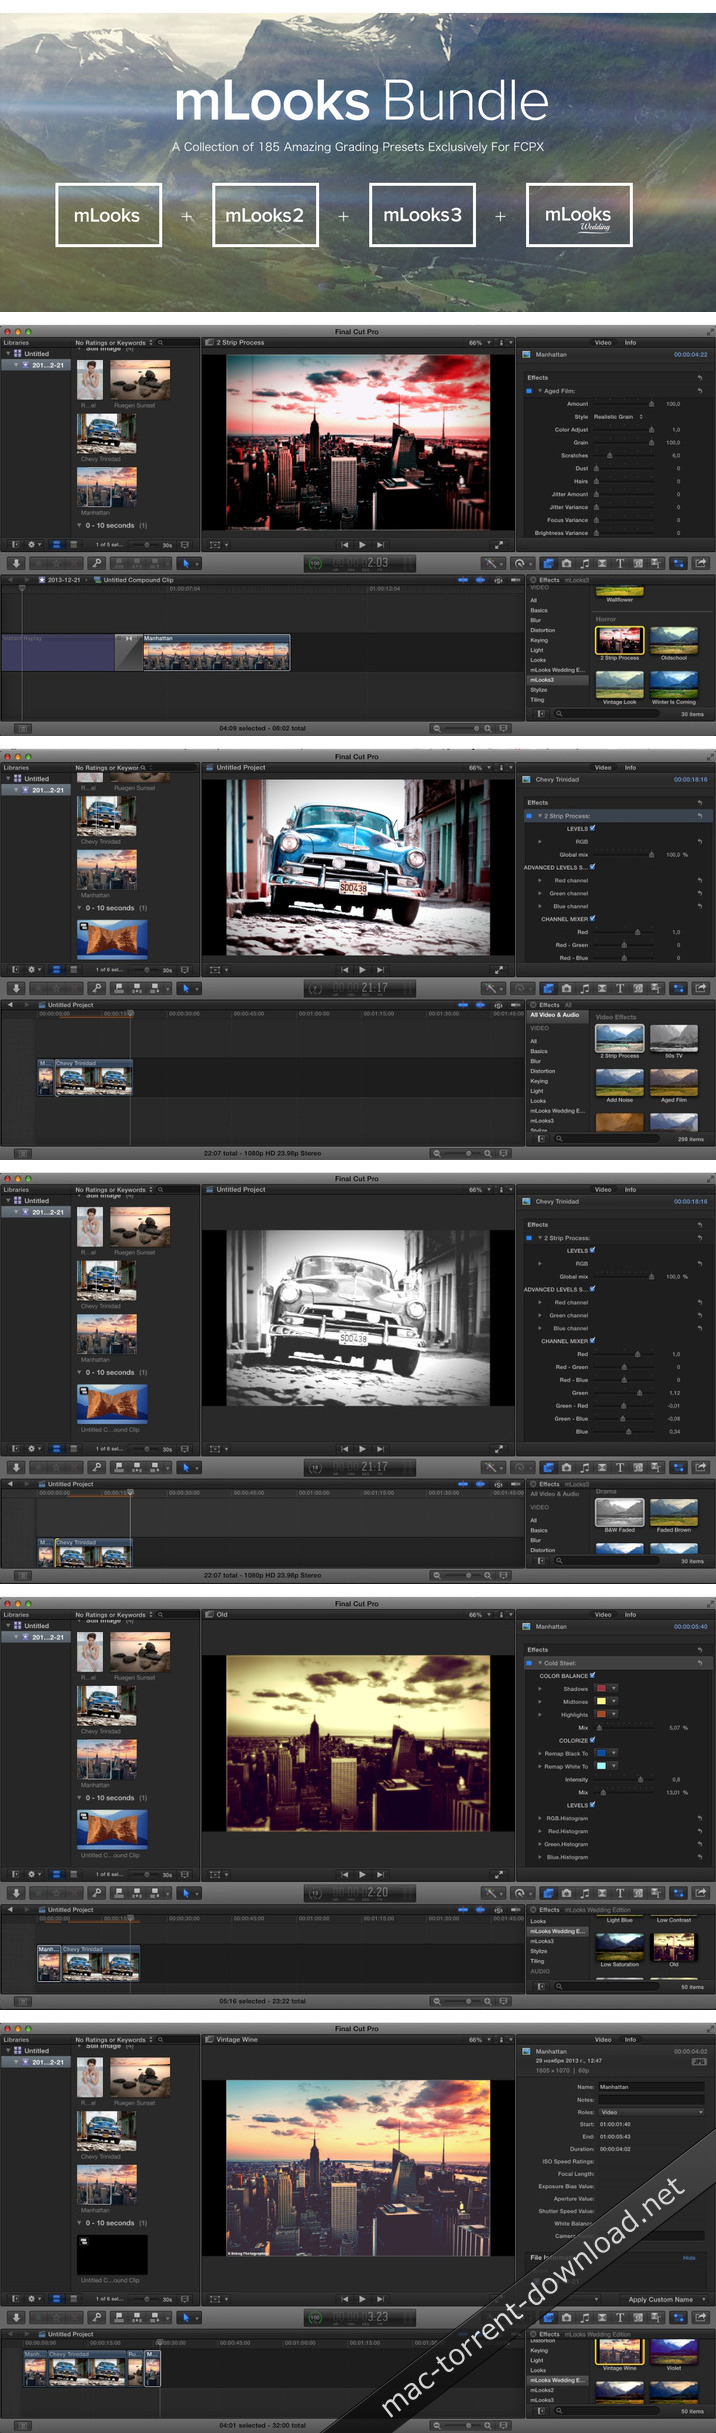 motionvfx_mlooks_bundle_for_final_cut_pro_x_and_adobe_premiere_pro